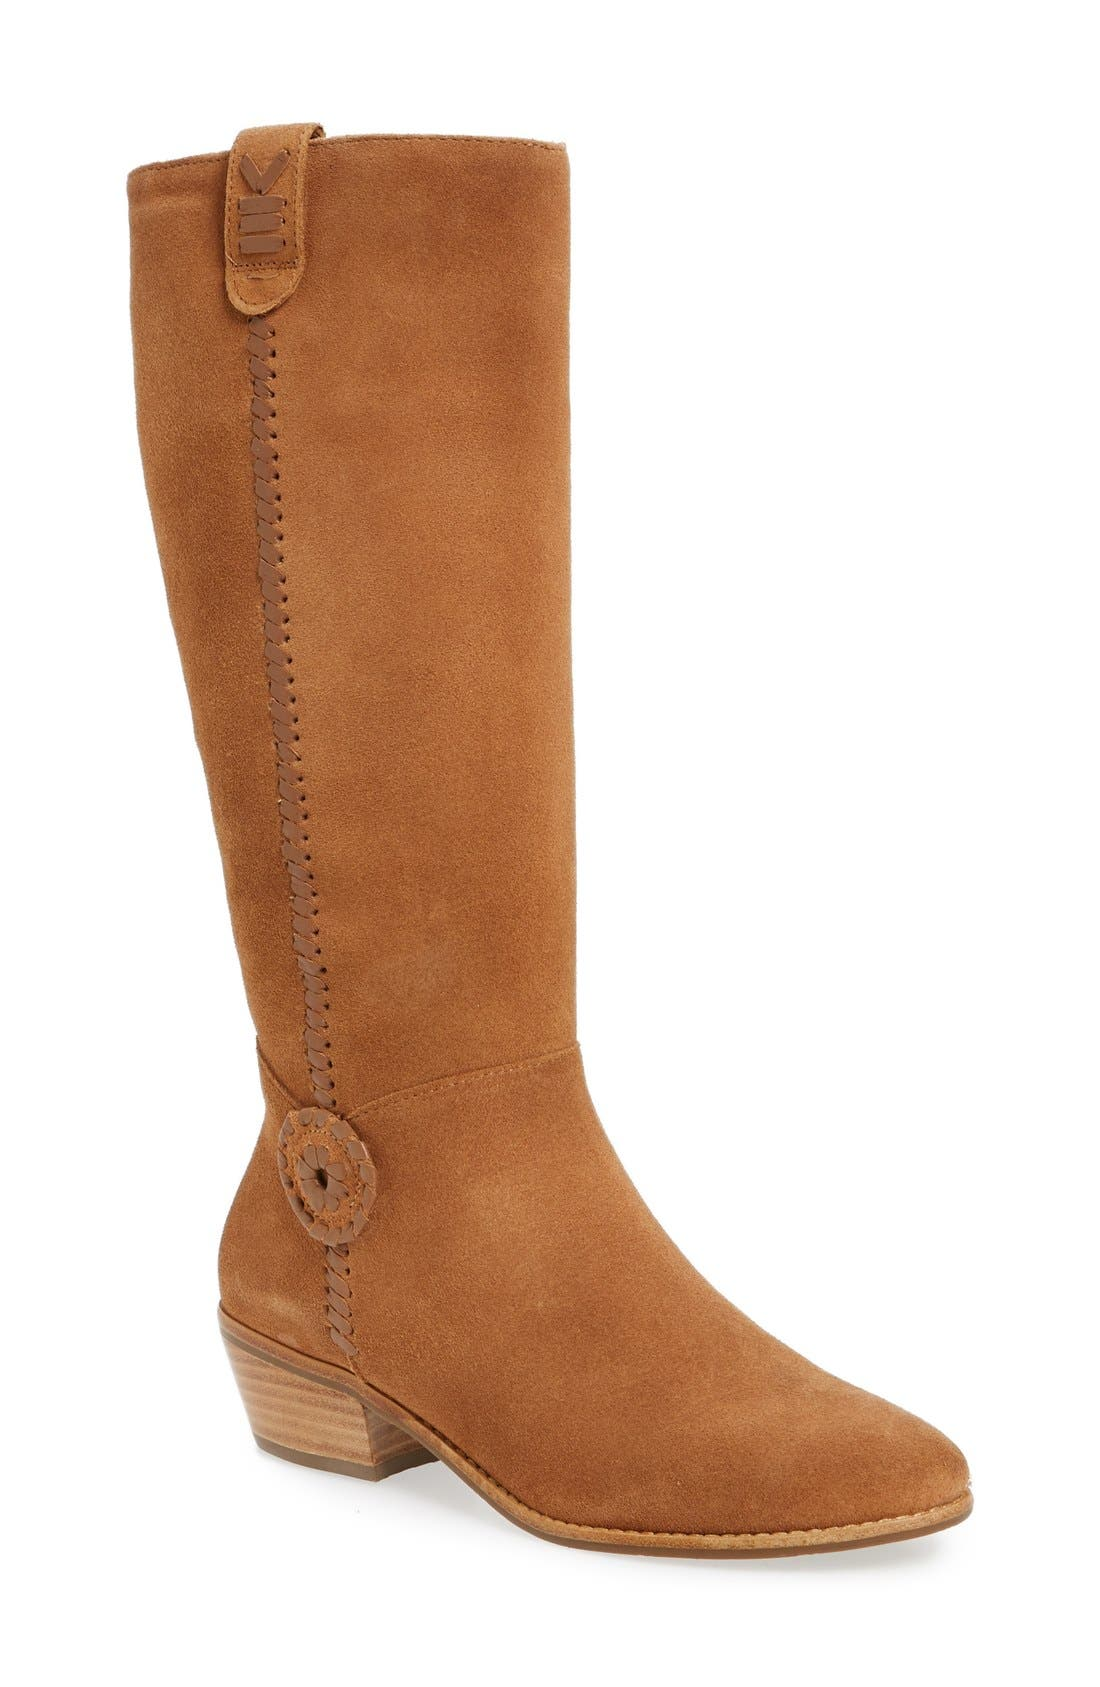 Alternate Image 1 Selected - Jack Rogers Sawyer Tall Riding Boot (Women)